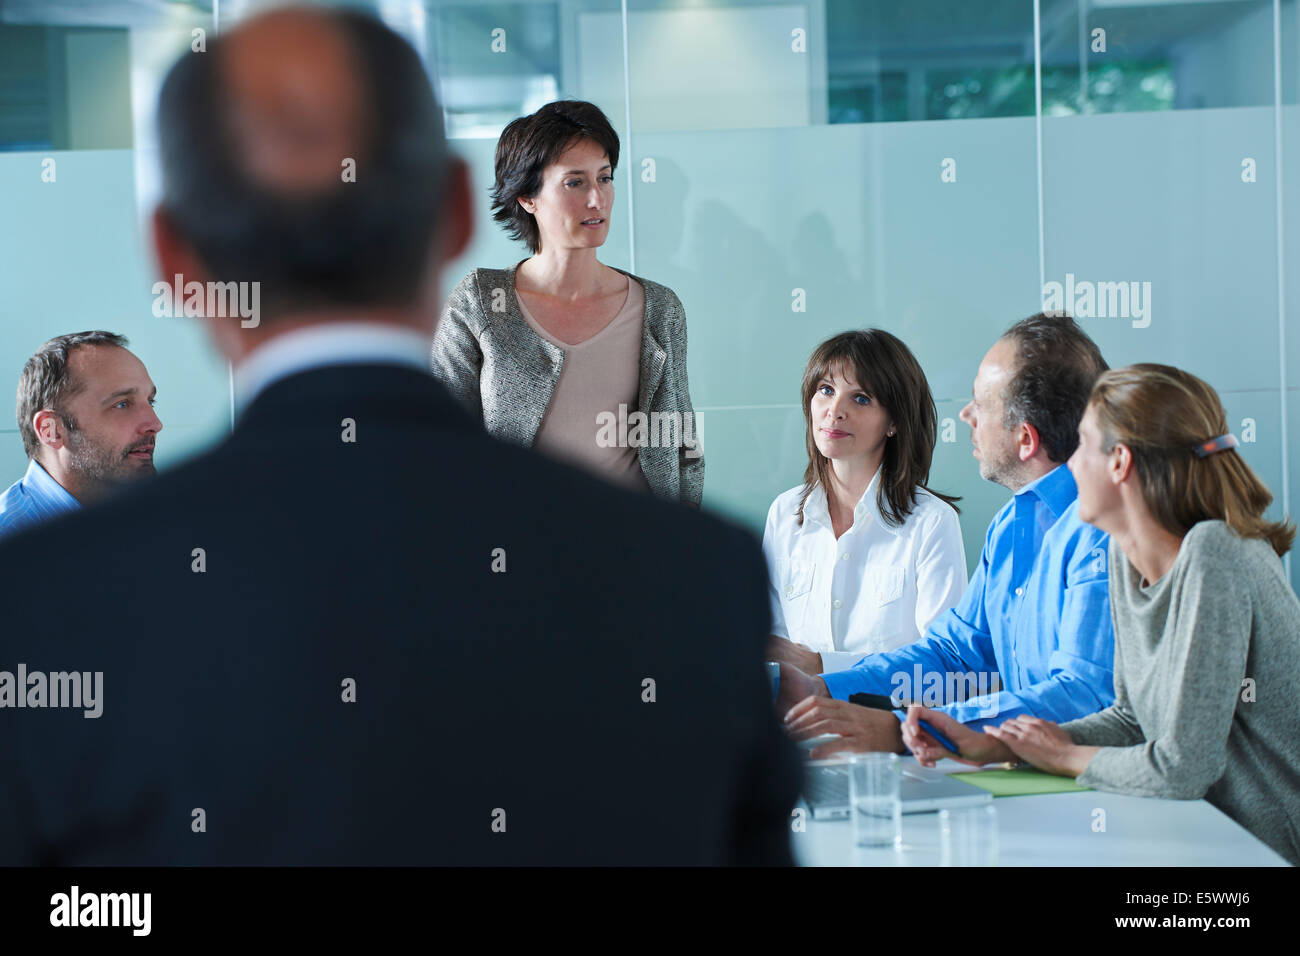 Businessmen and women arguing around boardroom table - Stock Image